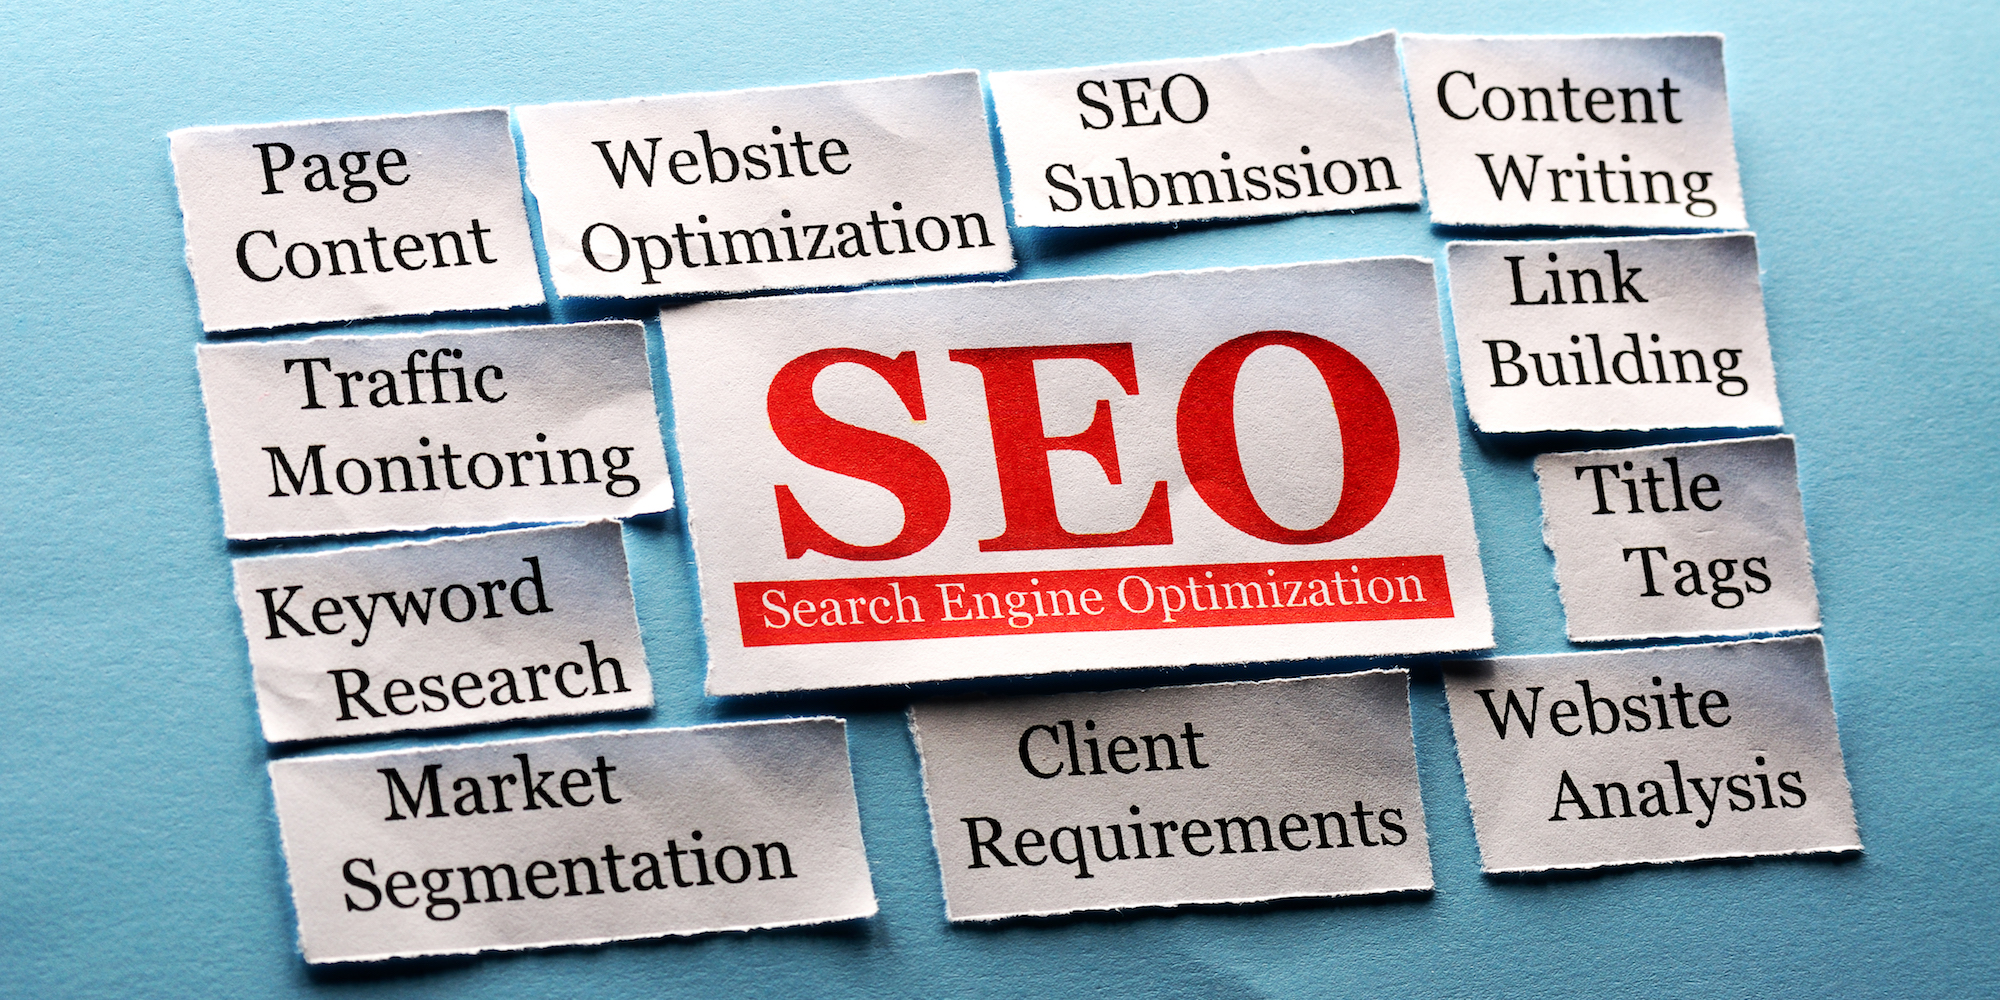 New York Search Engine Optimization - Create a Brand Name For Yourself